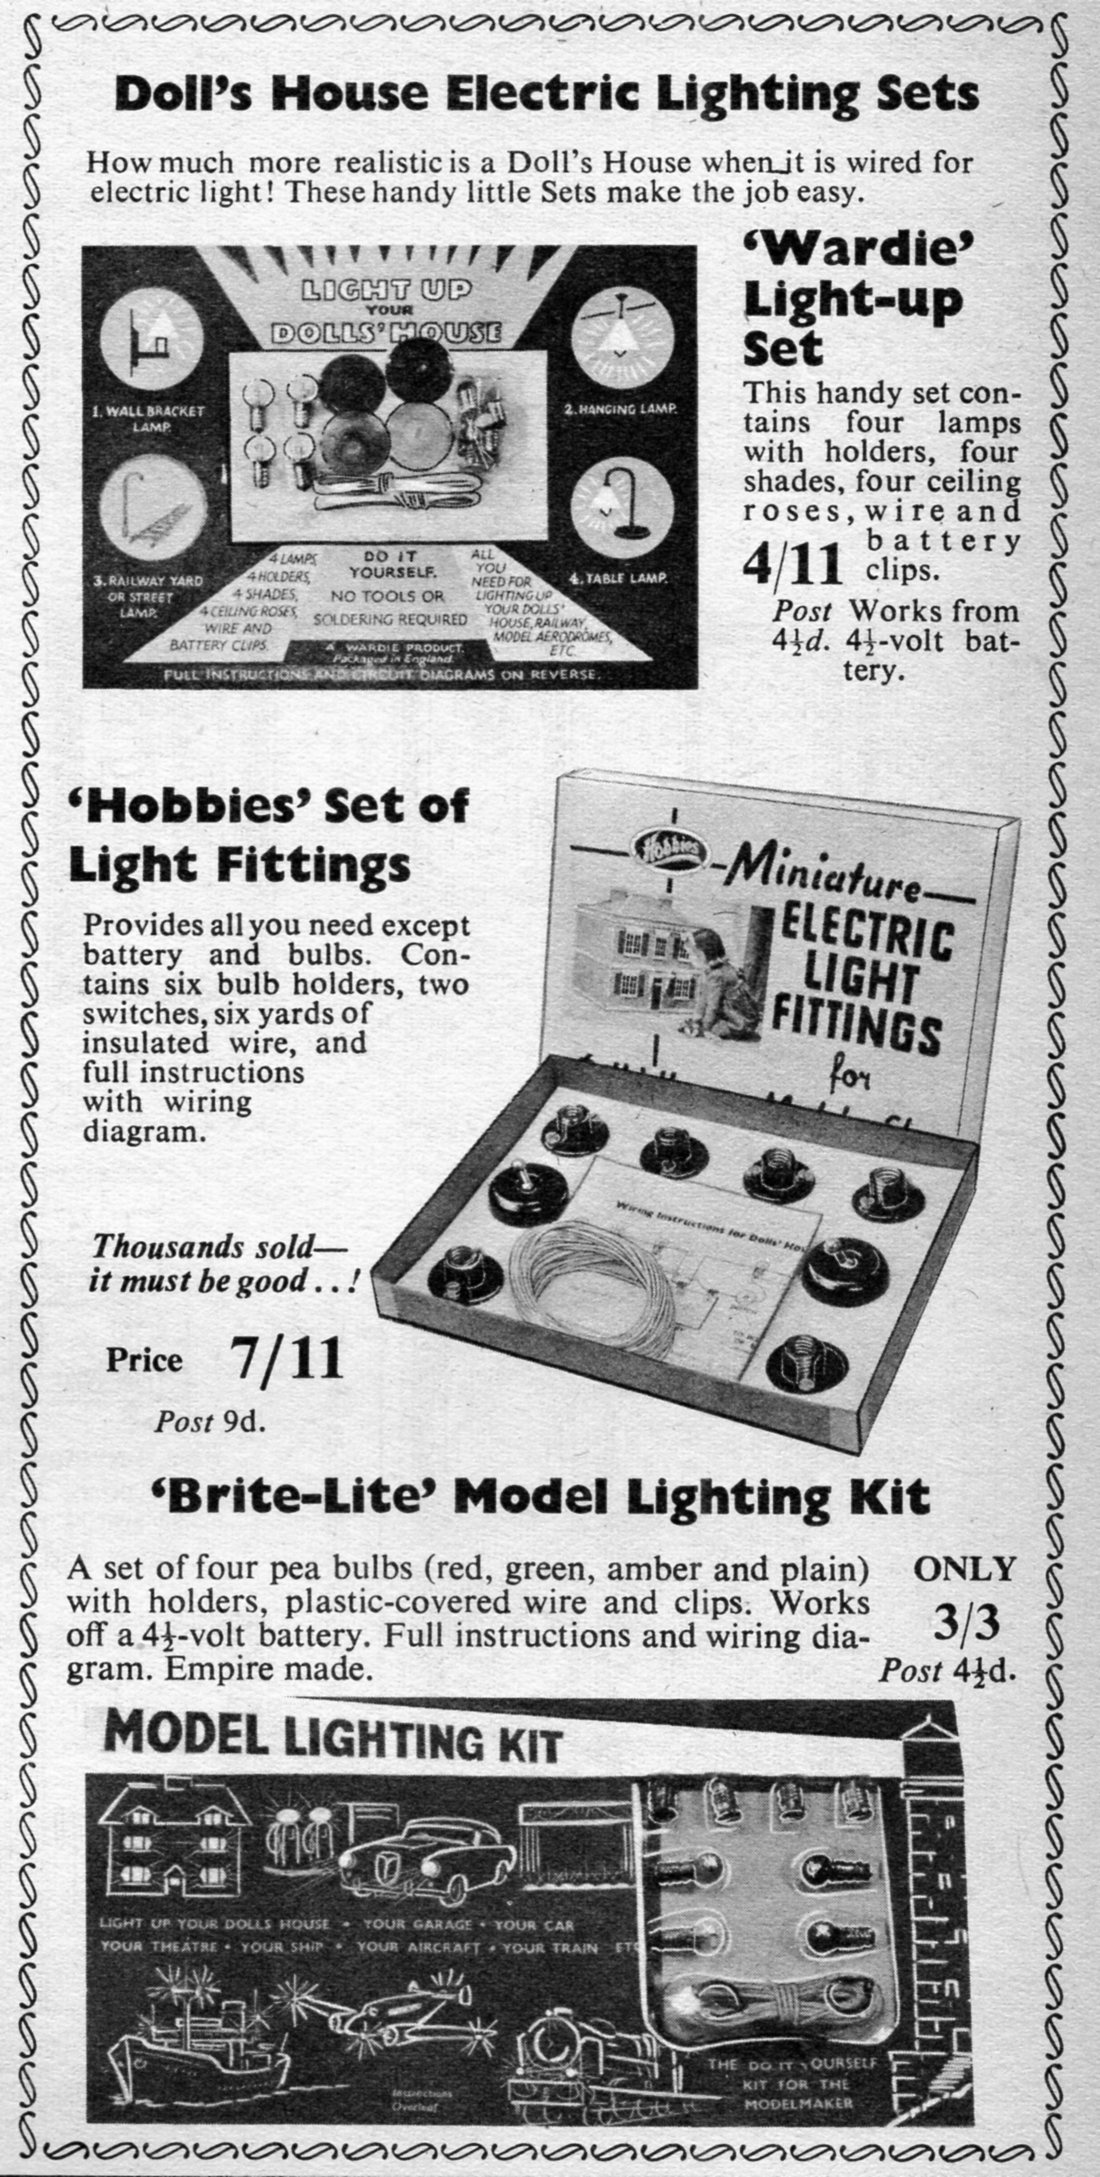 Hobbies Of Dereham Dolls House Furniture And Fittings 1946 1968 By Wiring Kit Lighting Sets In The 1964 Annual Available Until